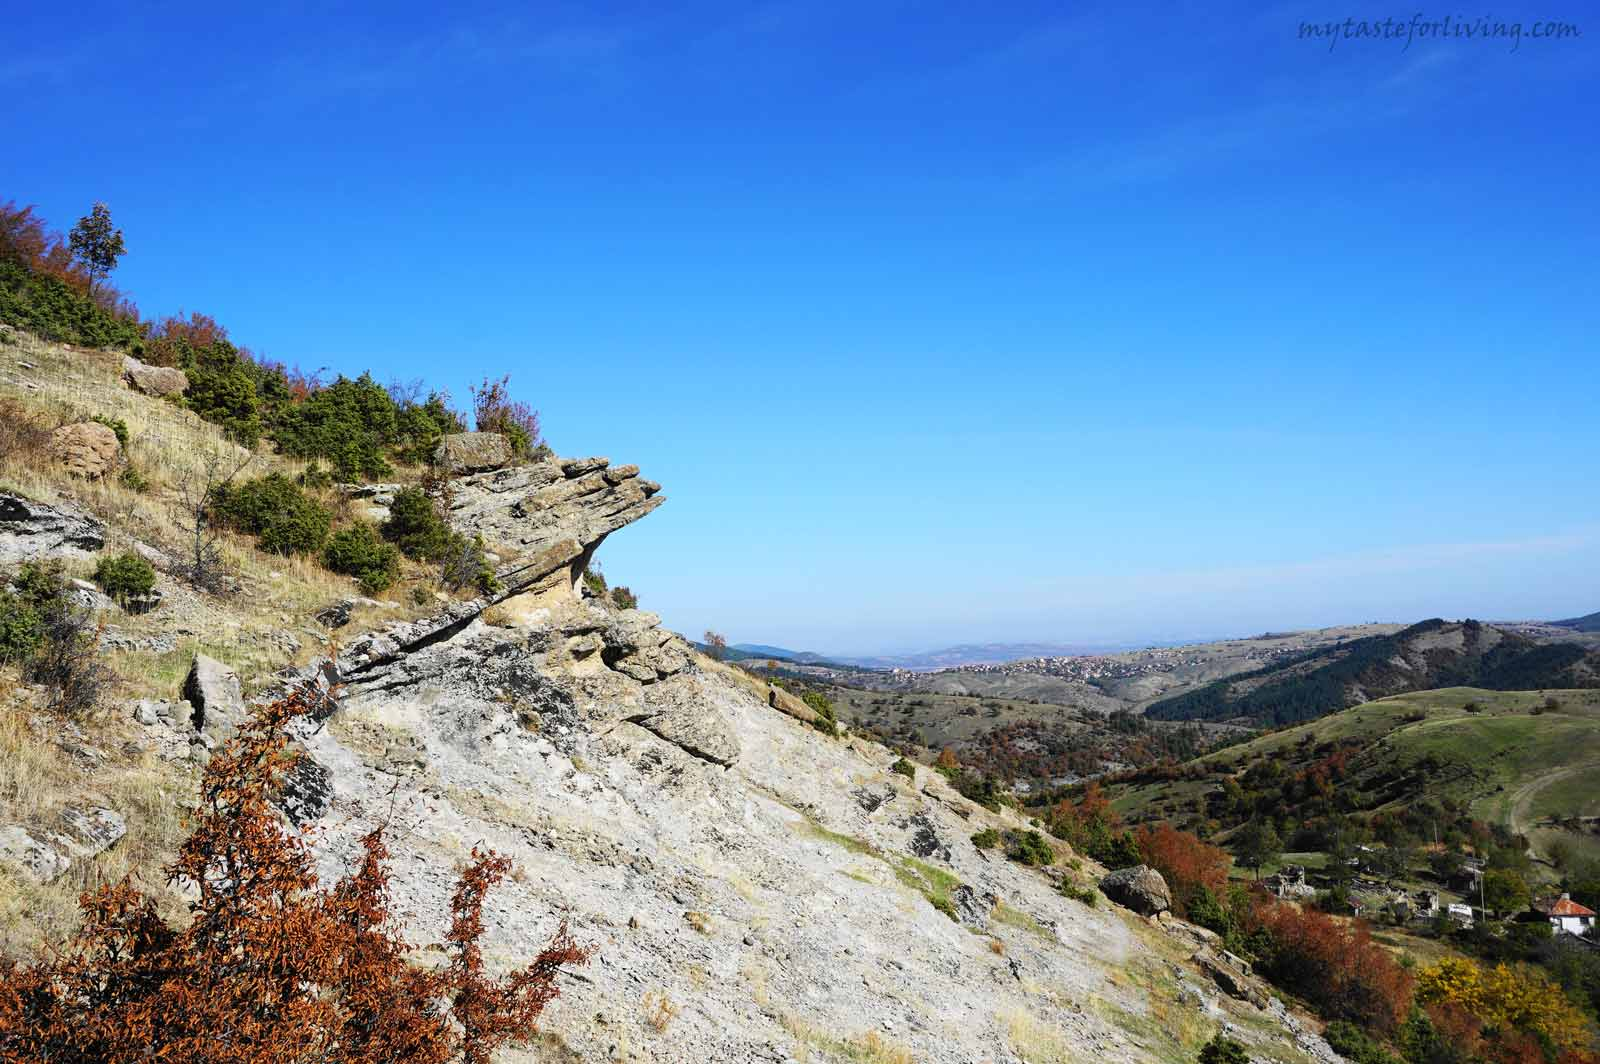 A magical place with an amazing view that will charge you with a lot of positive energy. Among the rock forms you can recognize stone mushrooms, figures of animals, faces and the characteristic for the Eastern Rhodopes trapezoidal rock niches, whose purpose remains a mystery.